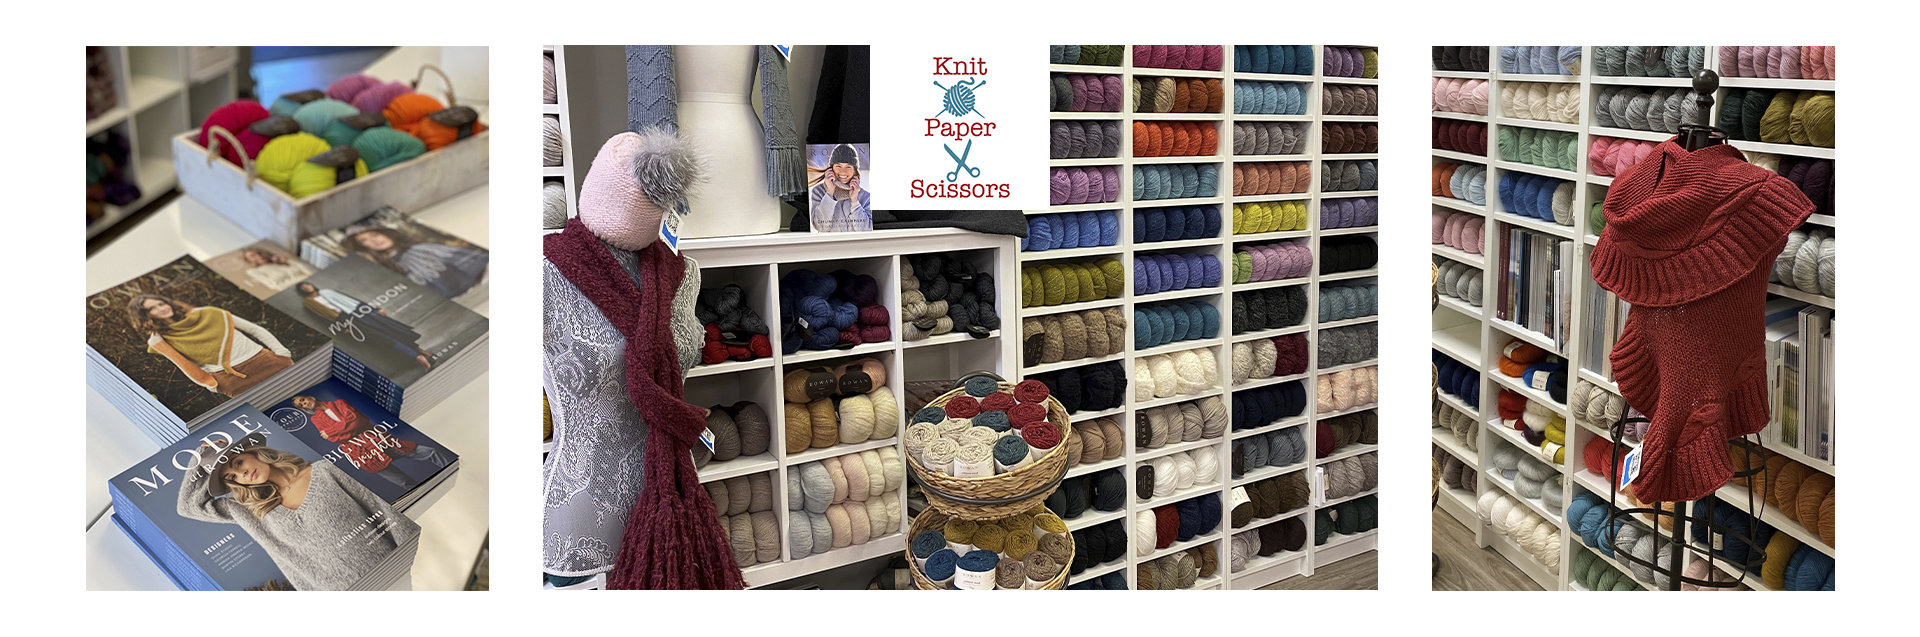 Your space to explore creativity. Learn to knit and crochet, explore fiber and more. Fabulous yarn and supplies available to purchase.